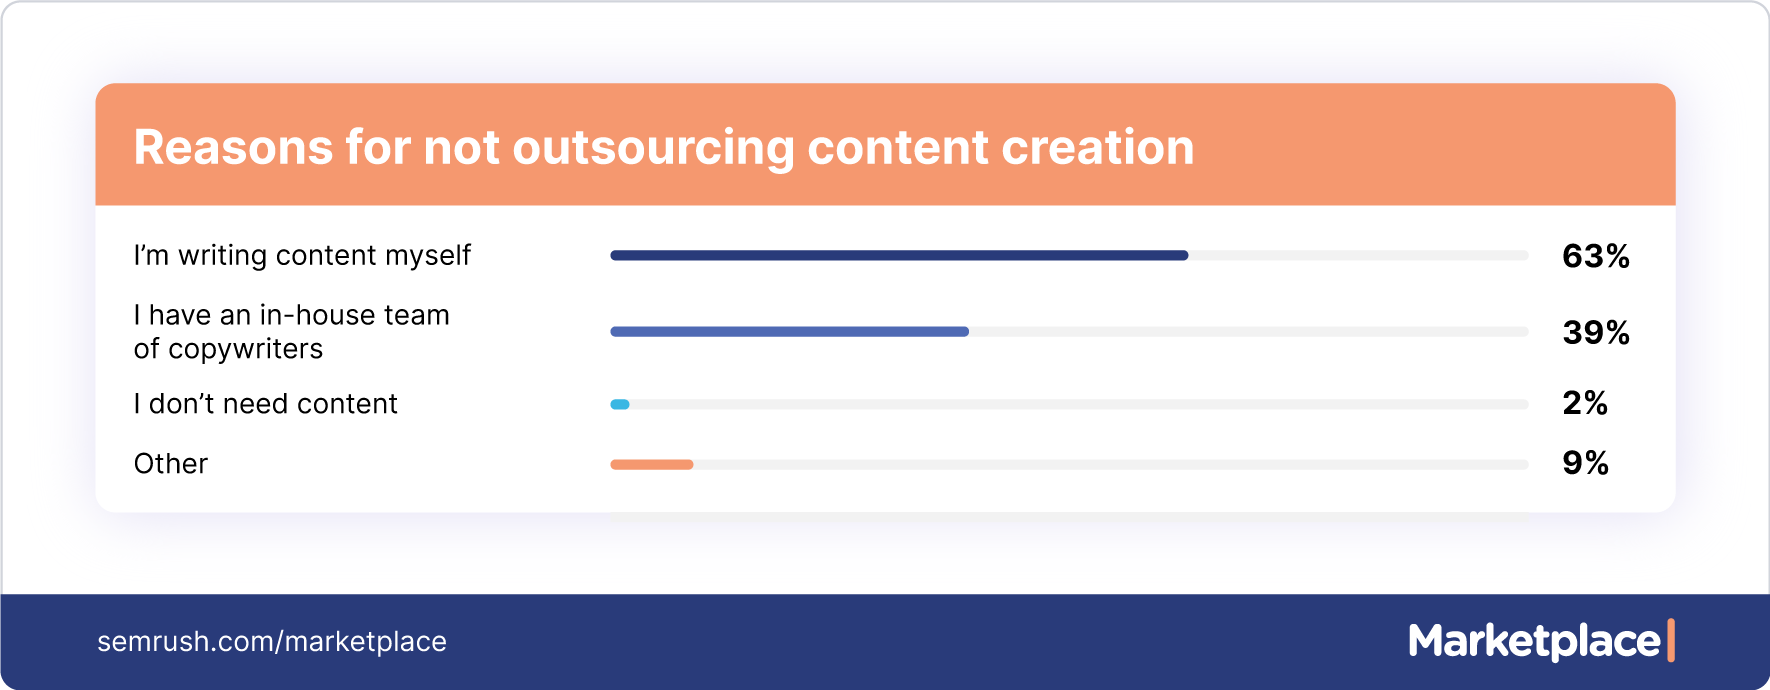 reasons for not outsourcing content creation